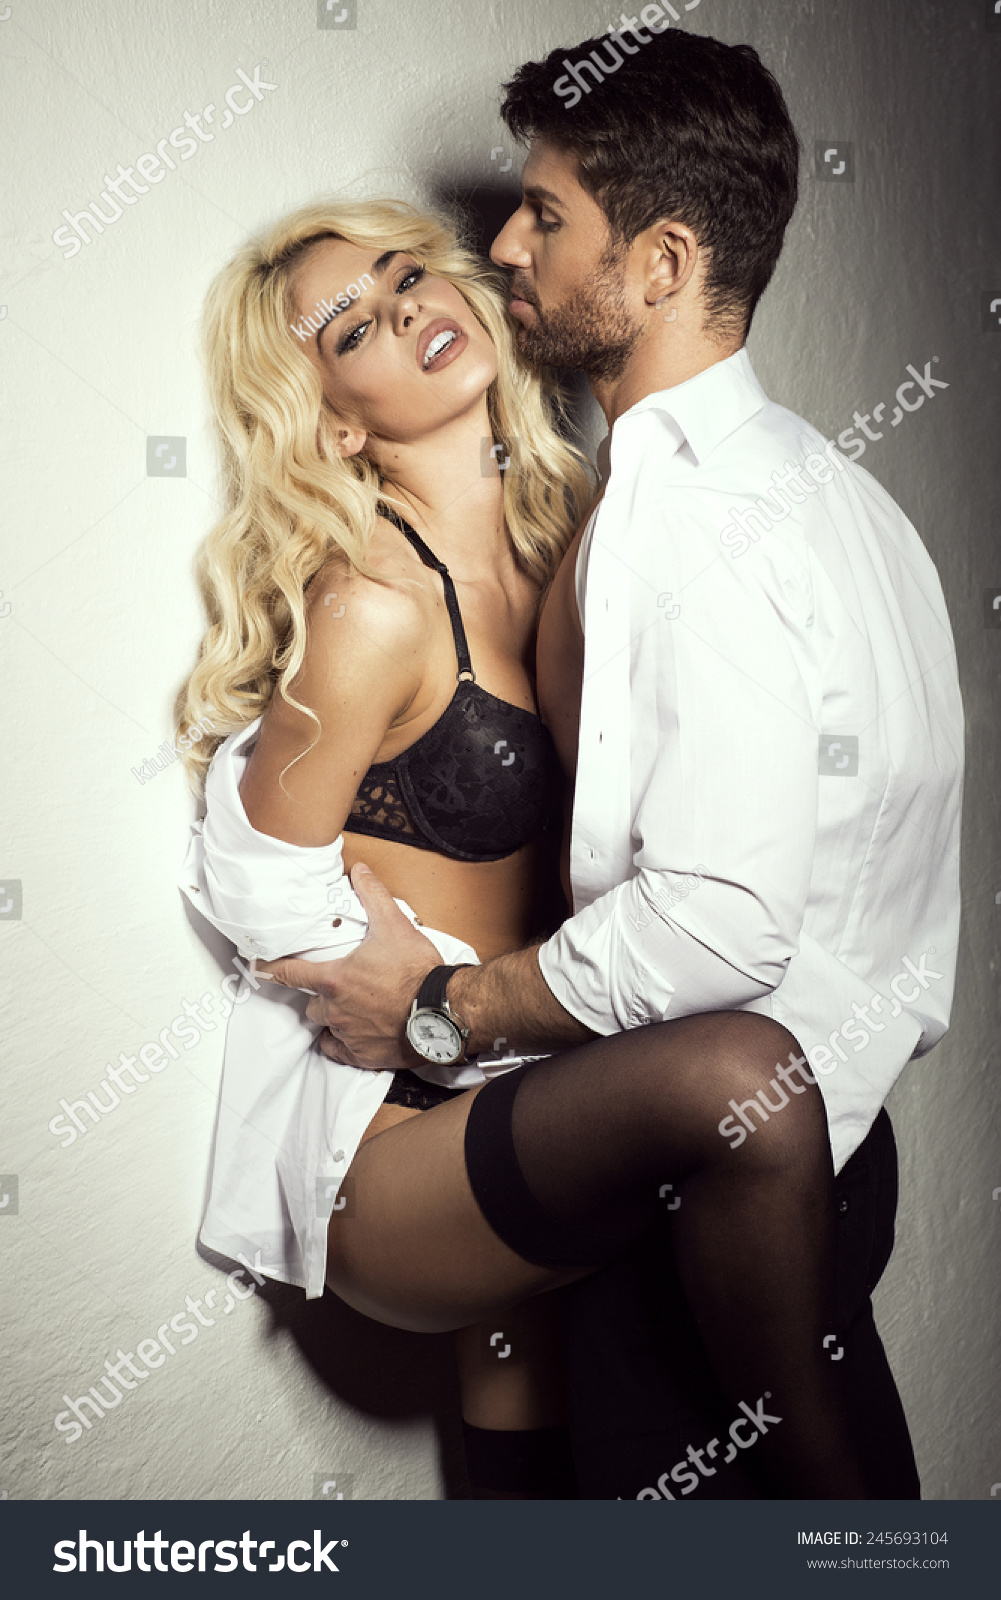 Young Sexy Undress Couple Stock Photo 245693104 - Shutterstock-6735